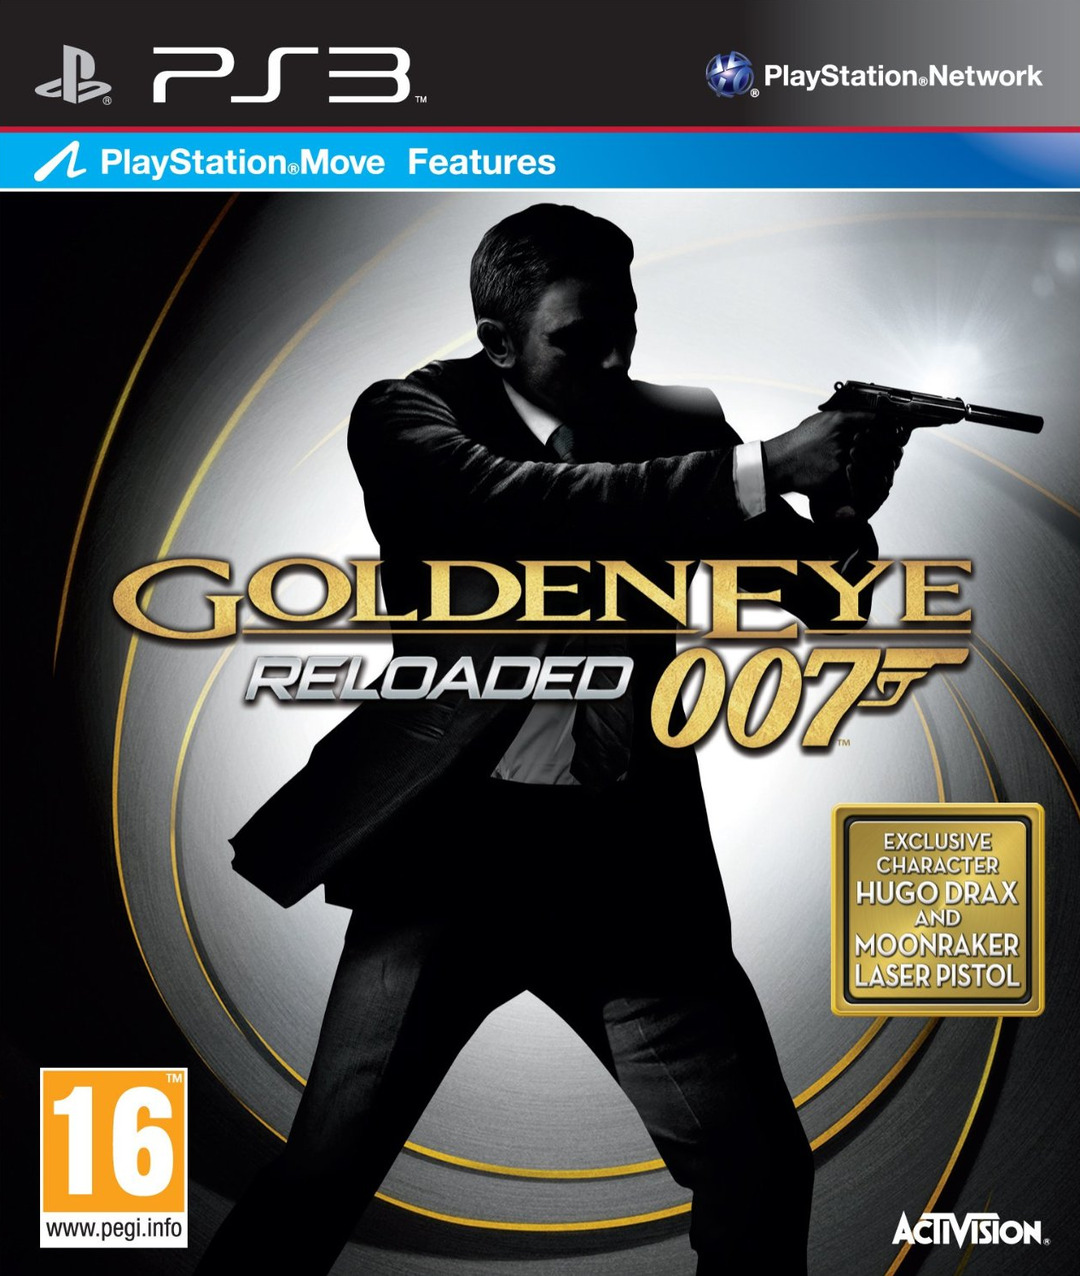 [MULTI] James Bond Goldeneye Reloaded 007 PS3-DComics